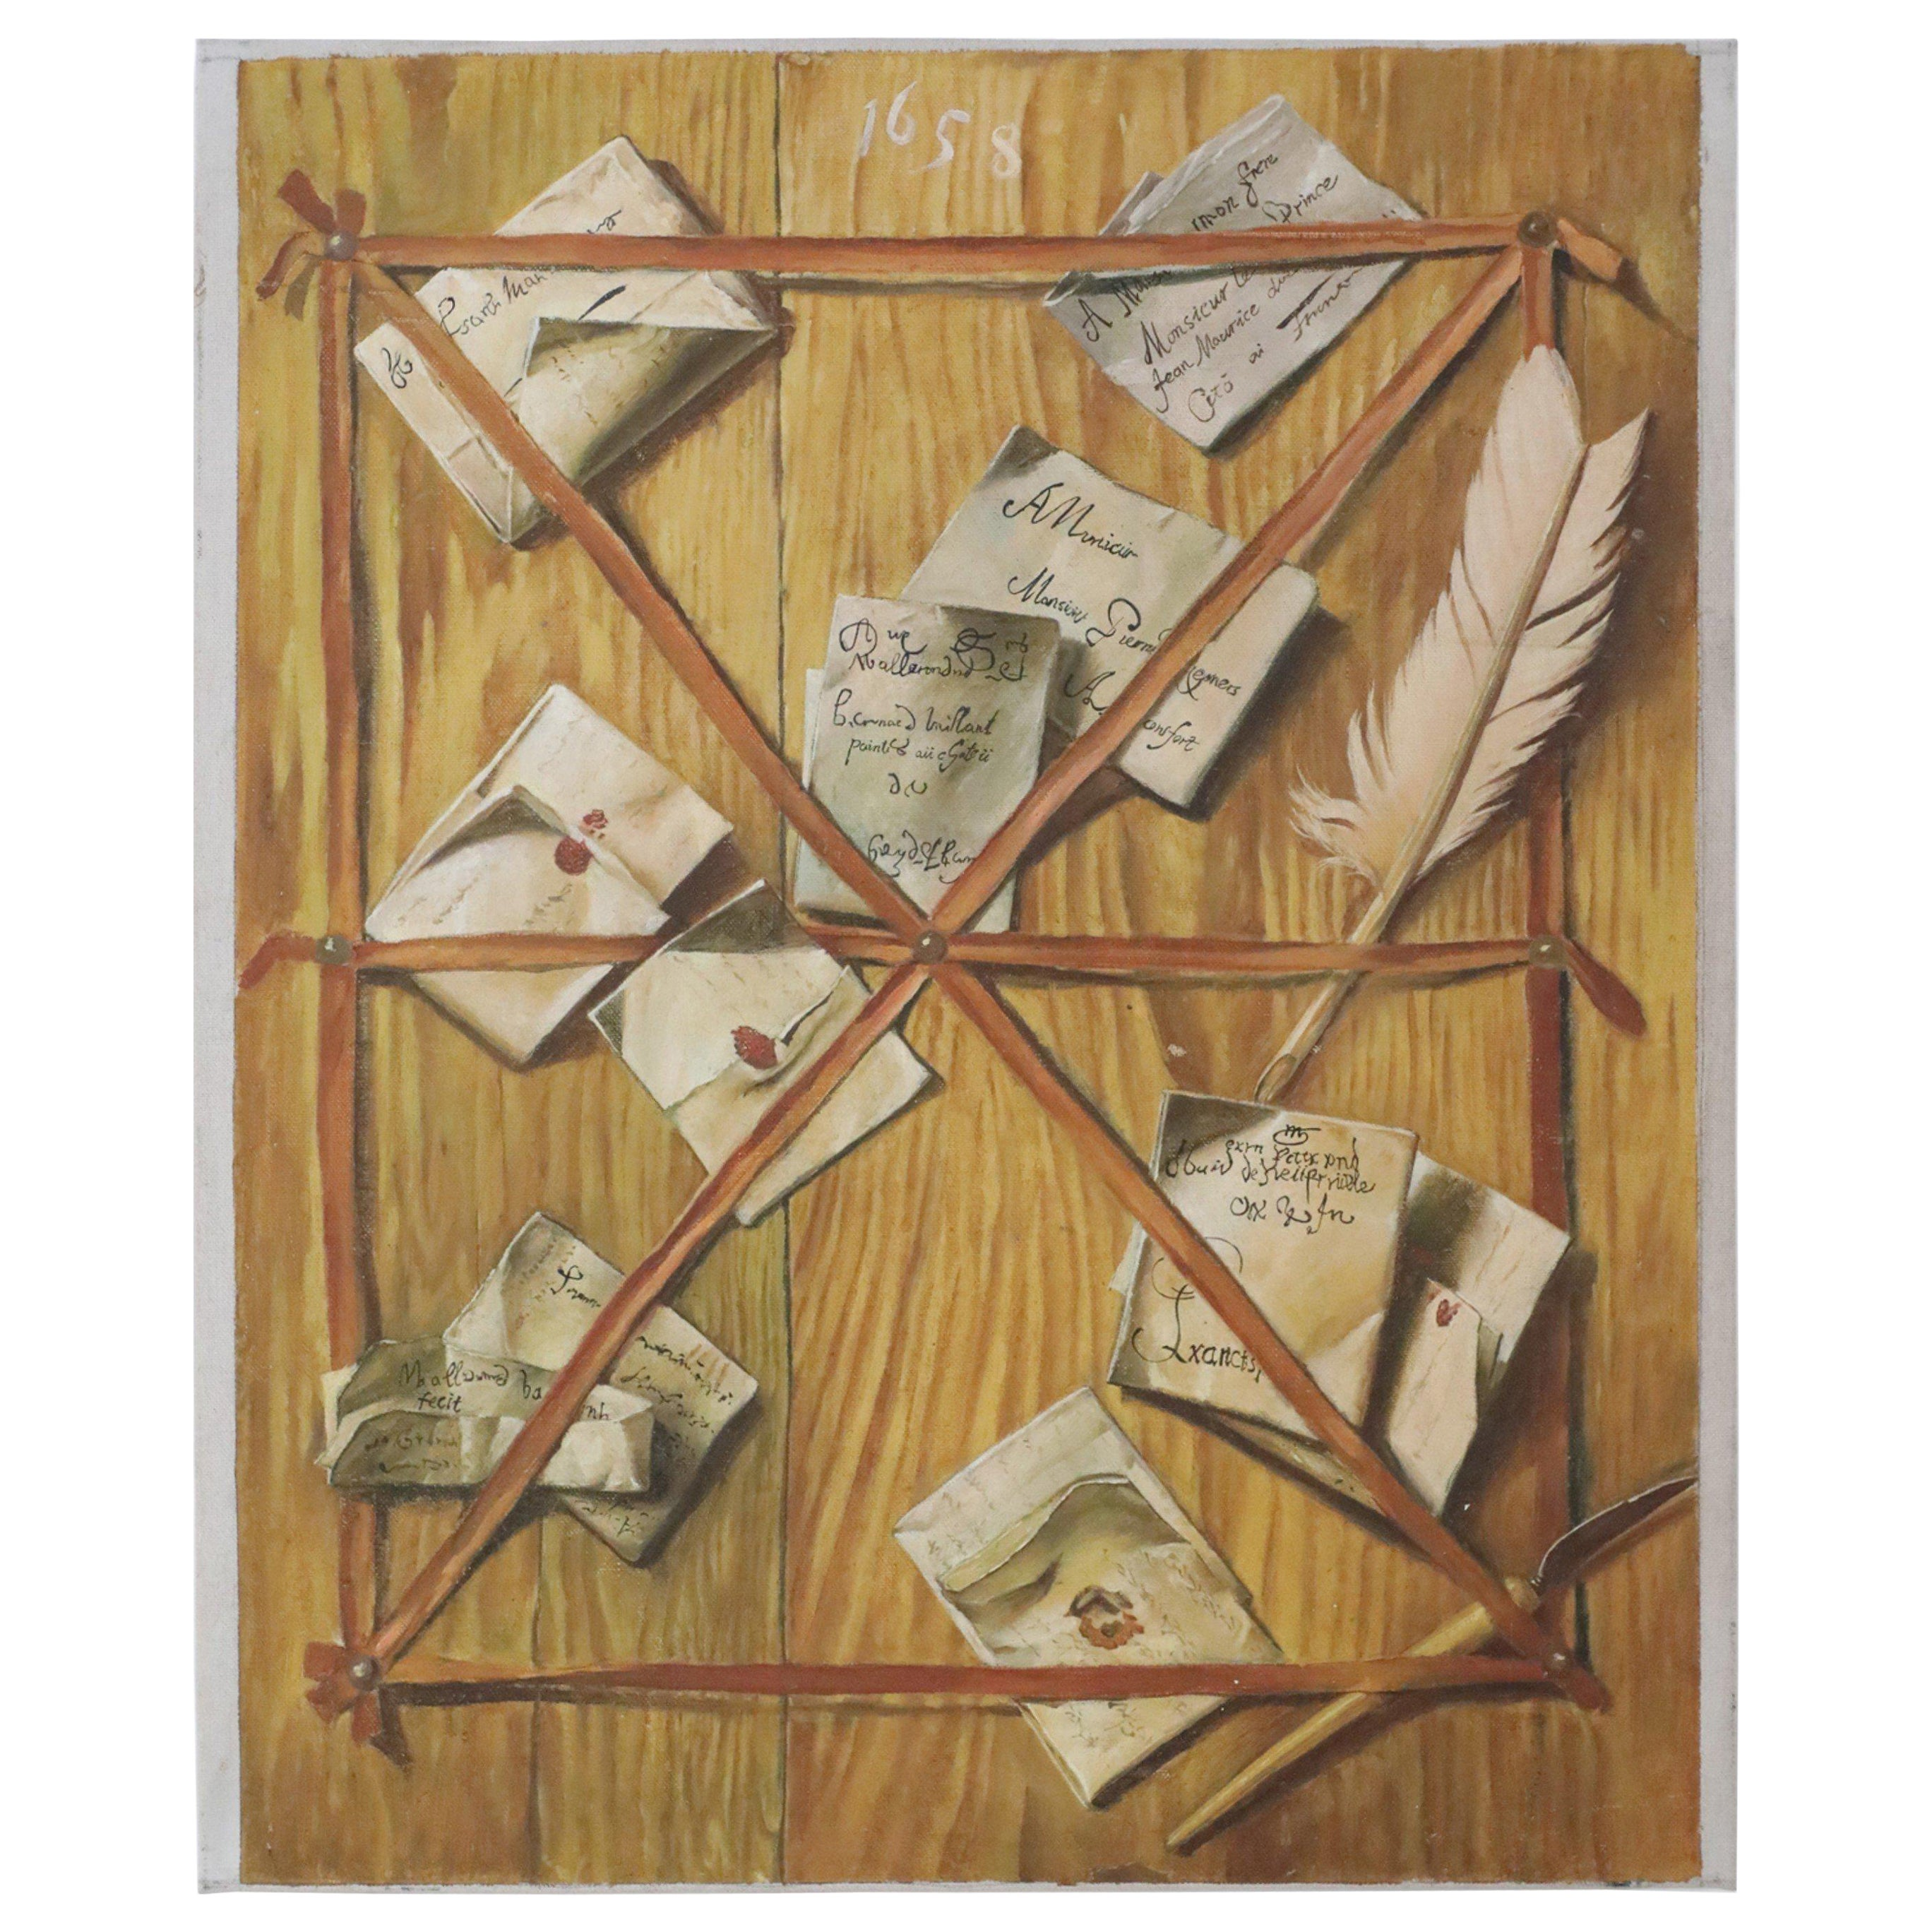 Trompe l'oeil Still Life Painting of Letters